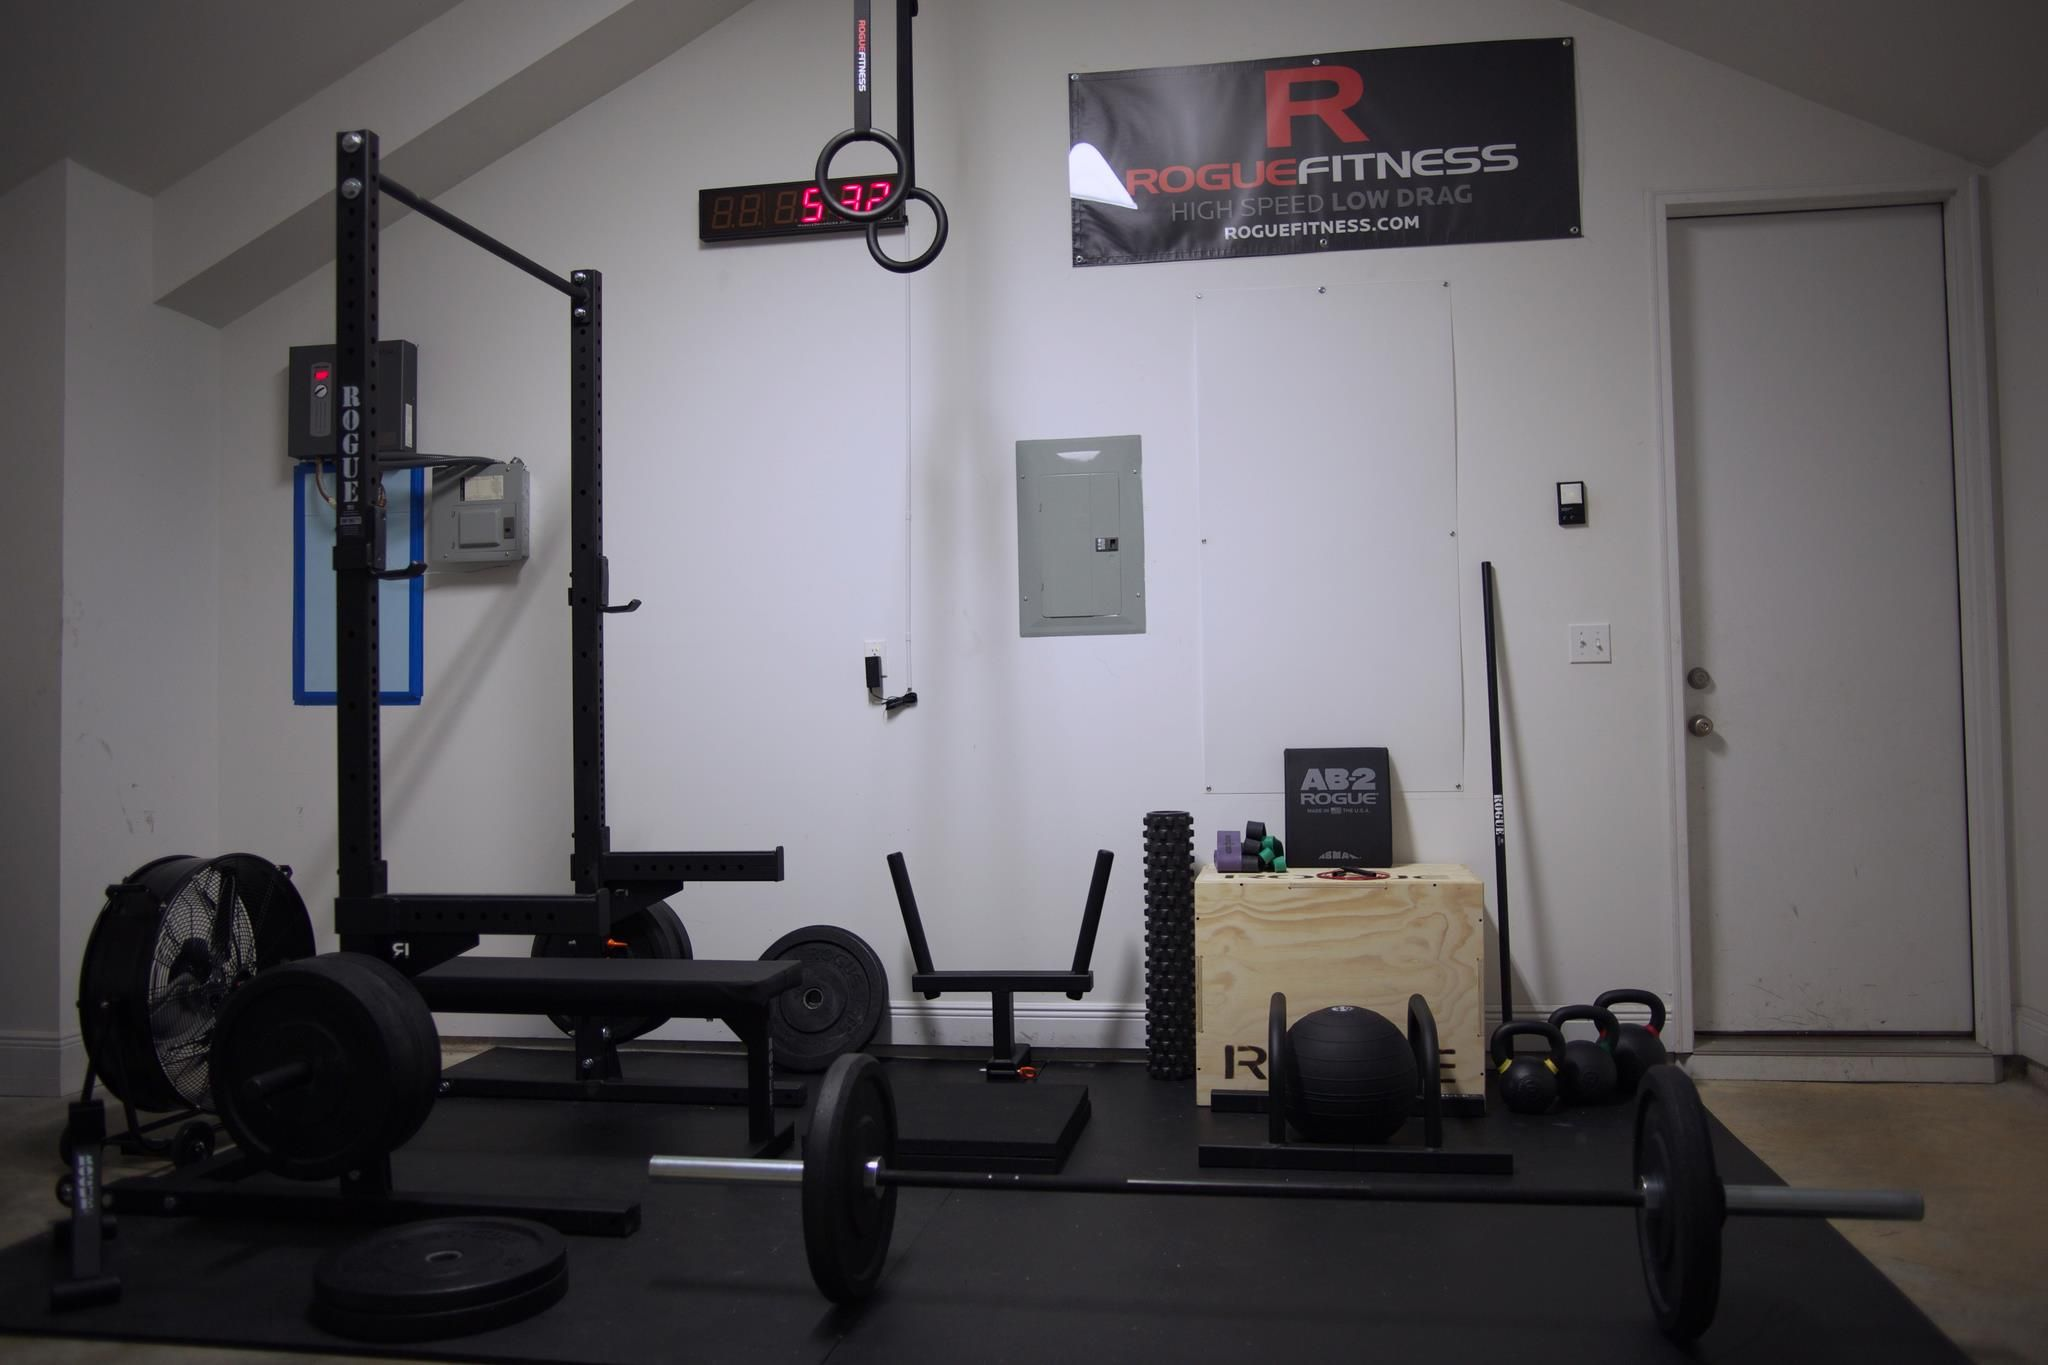 Rogue fitness garage gym luxury essential items to outfit your